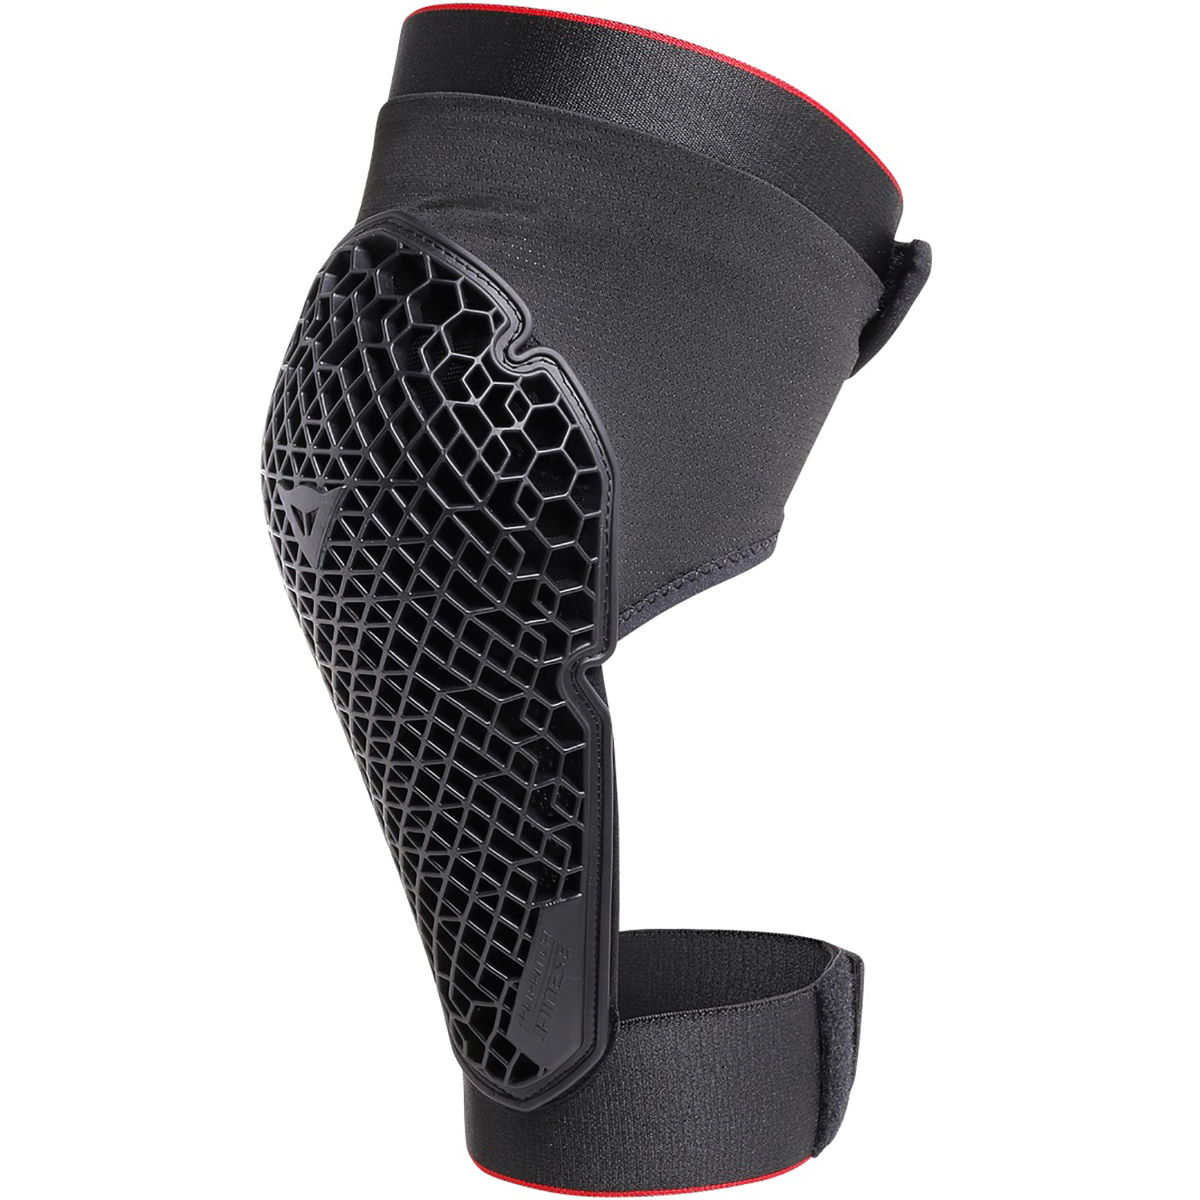 Dainese Dainese Trail Skins 2 Knee Guard Lite   Knee Pads